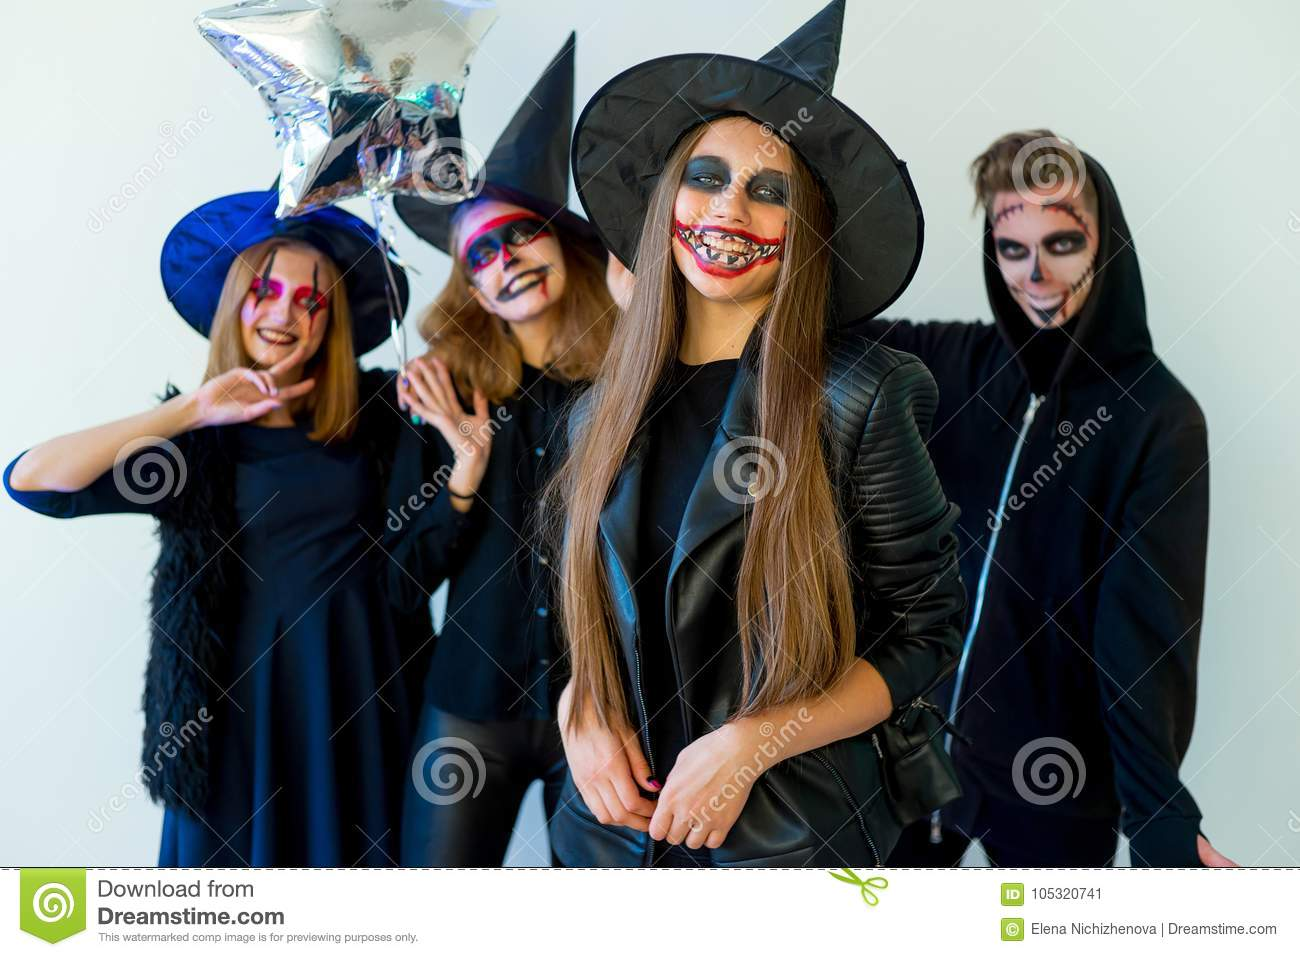 Wonderful Halloween Party. People In Halloween Costumes With Make Up